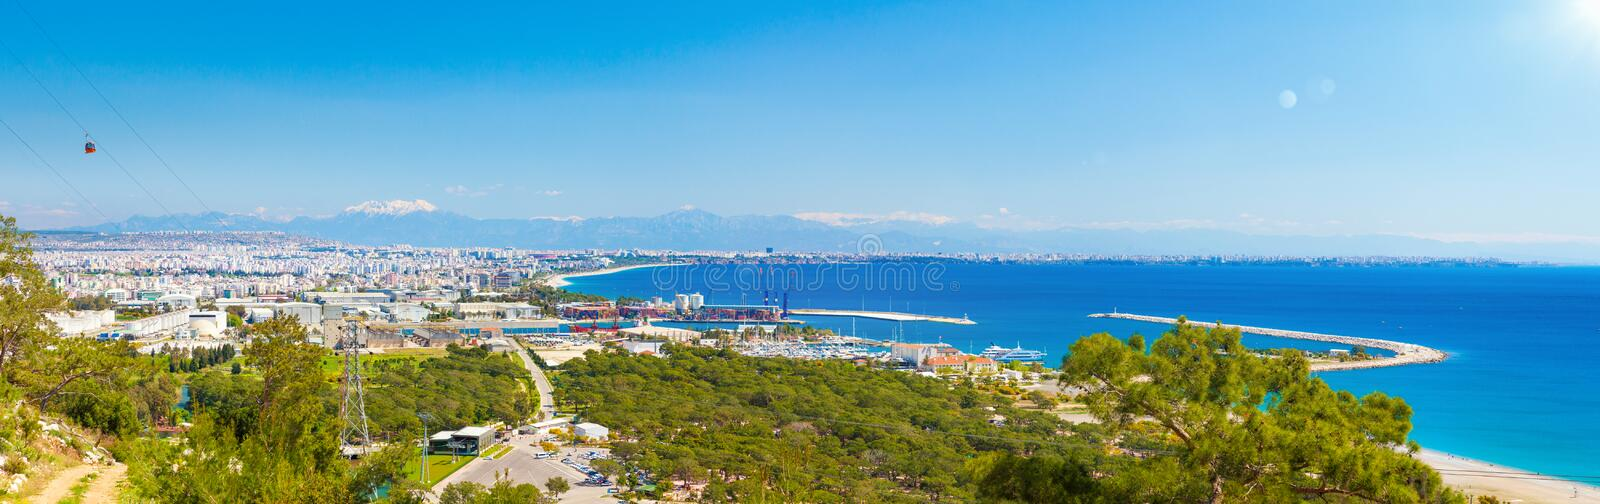 Aerial panoramic view of resort city Antalya, Turkey. Sunny summer day with blue sky and clear sea in Antalya. Aerial panoramic view of beautiful blue sea and royalty free stock images